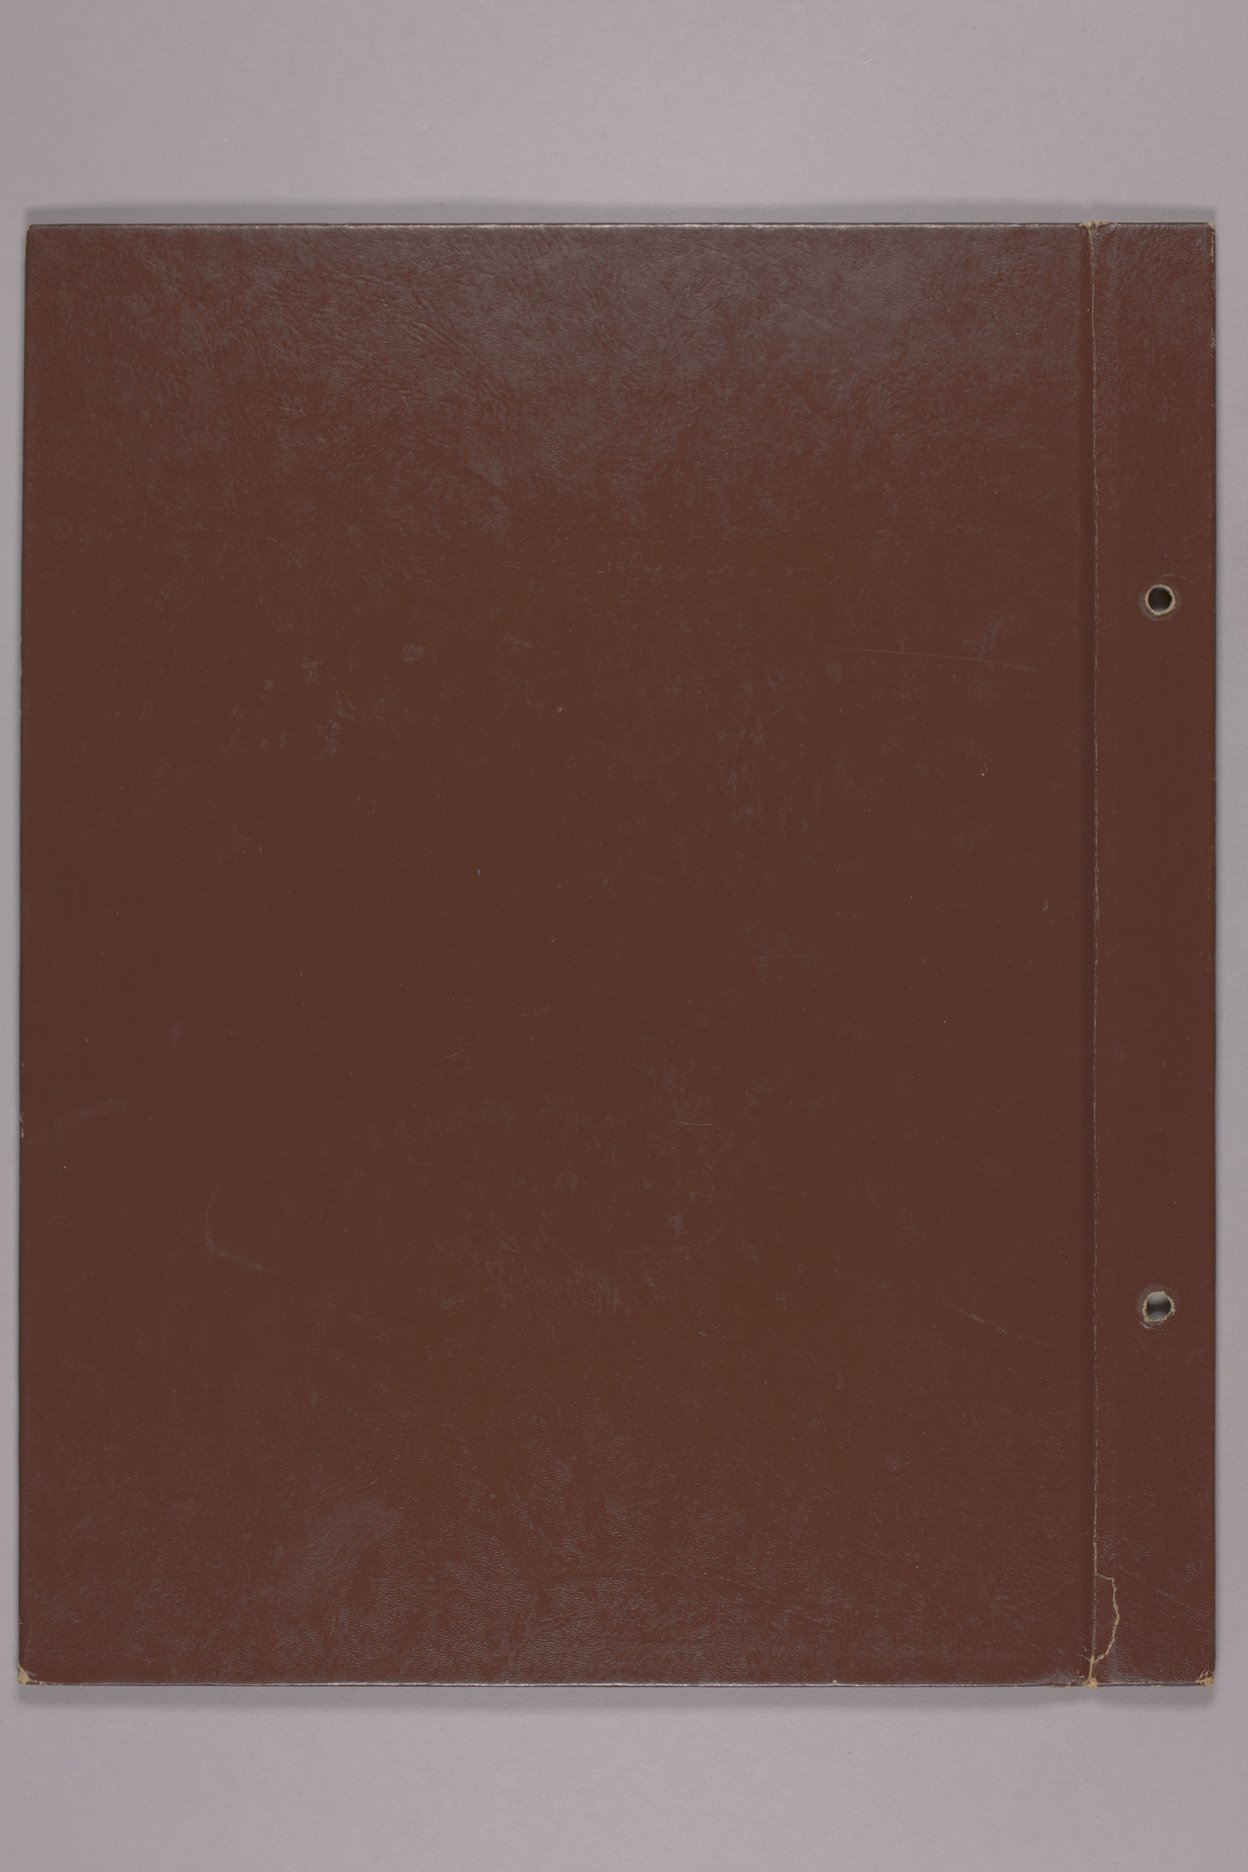 Goddard Woman's Club scapbook - Back cover